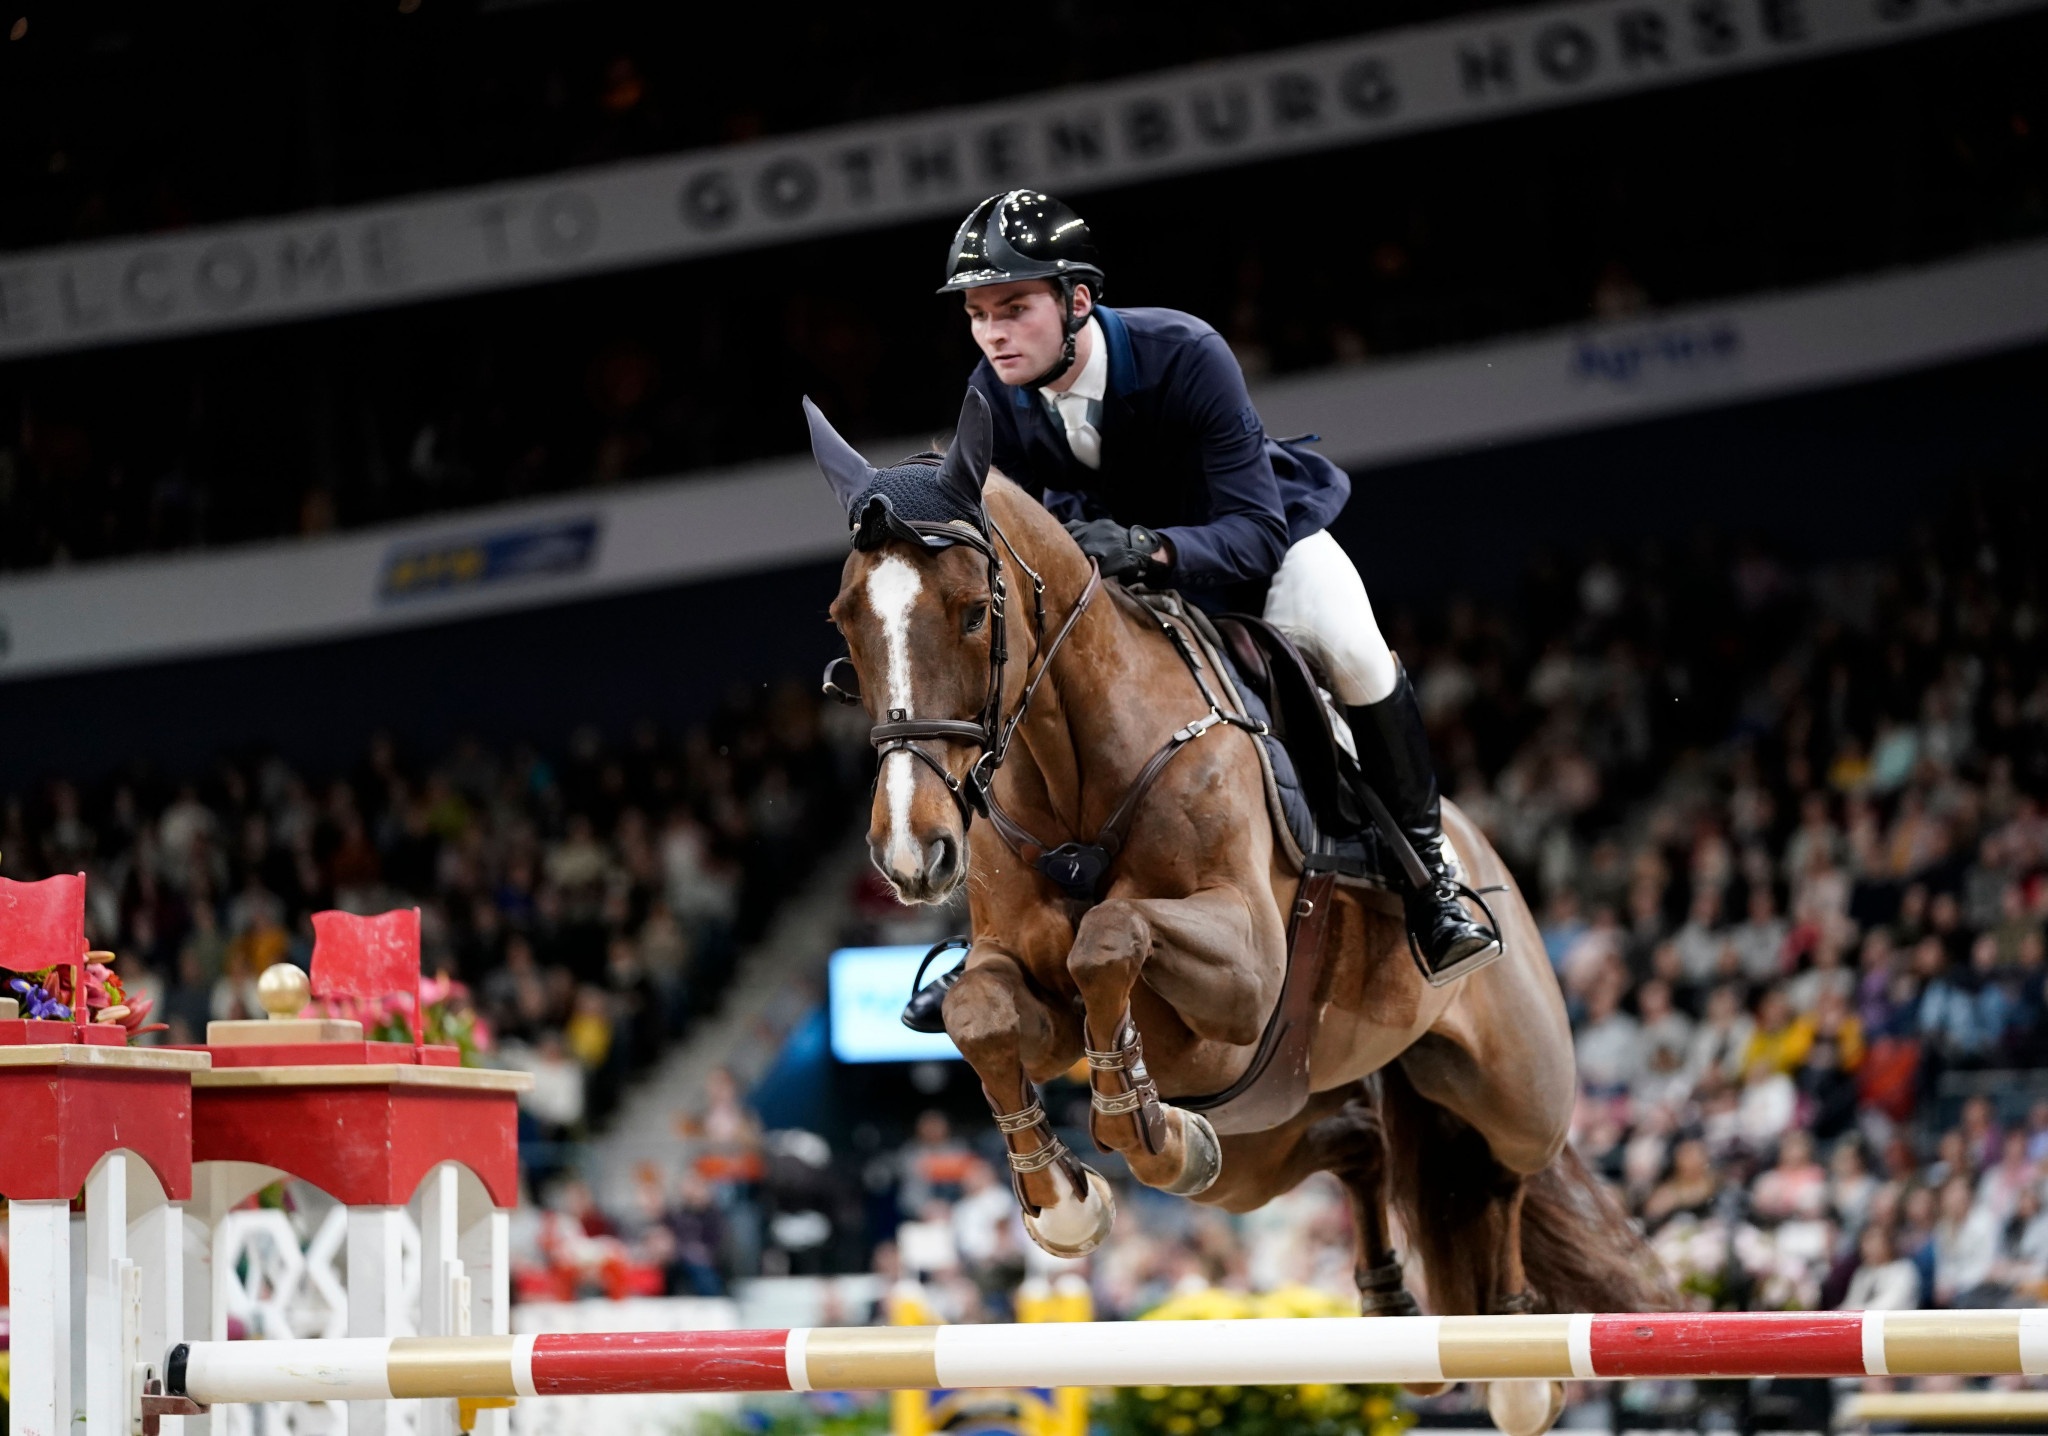 Gothenburg was set to host the FEI Jumping and Dressage World Cup Finals before the EHV-1 outbreak ©Getty Images